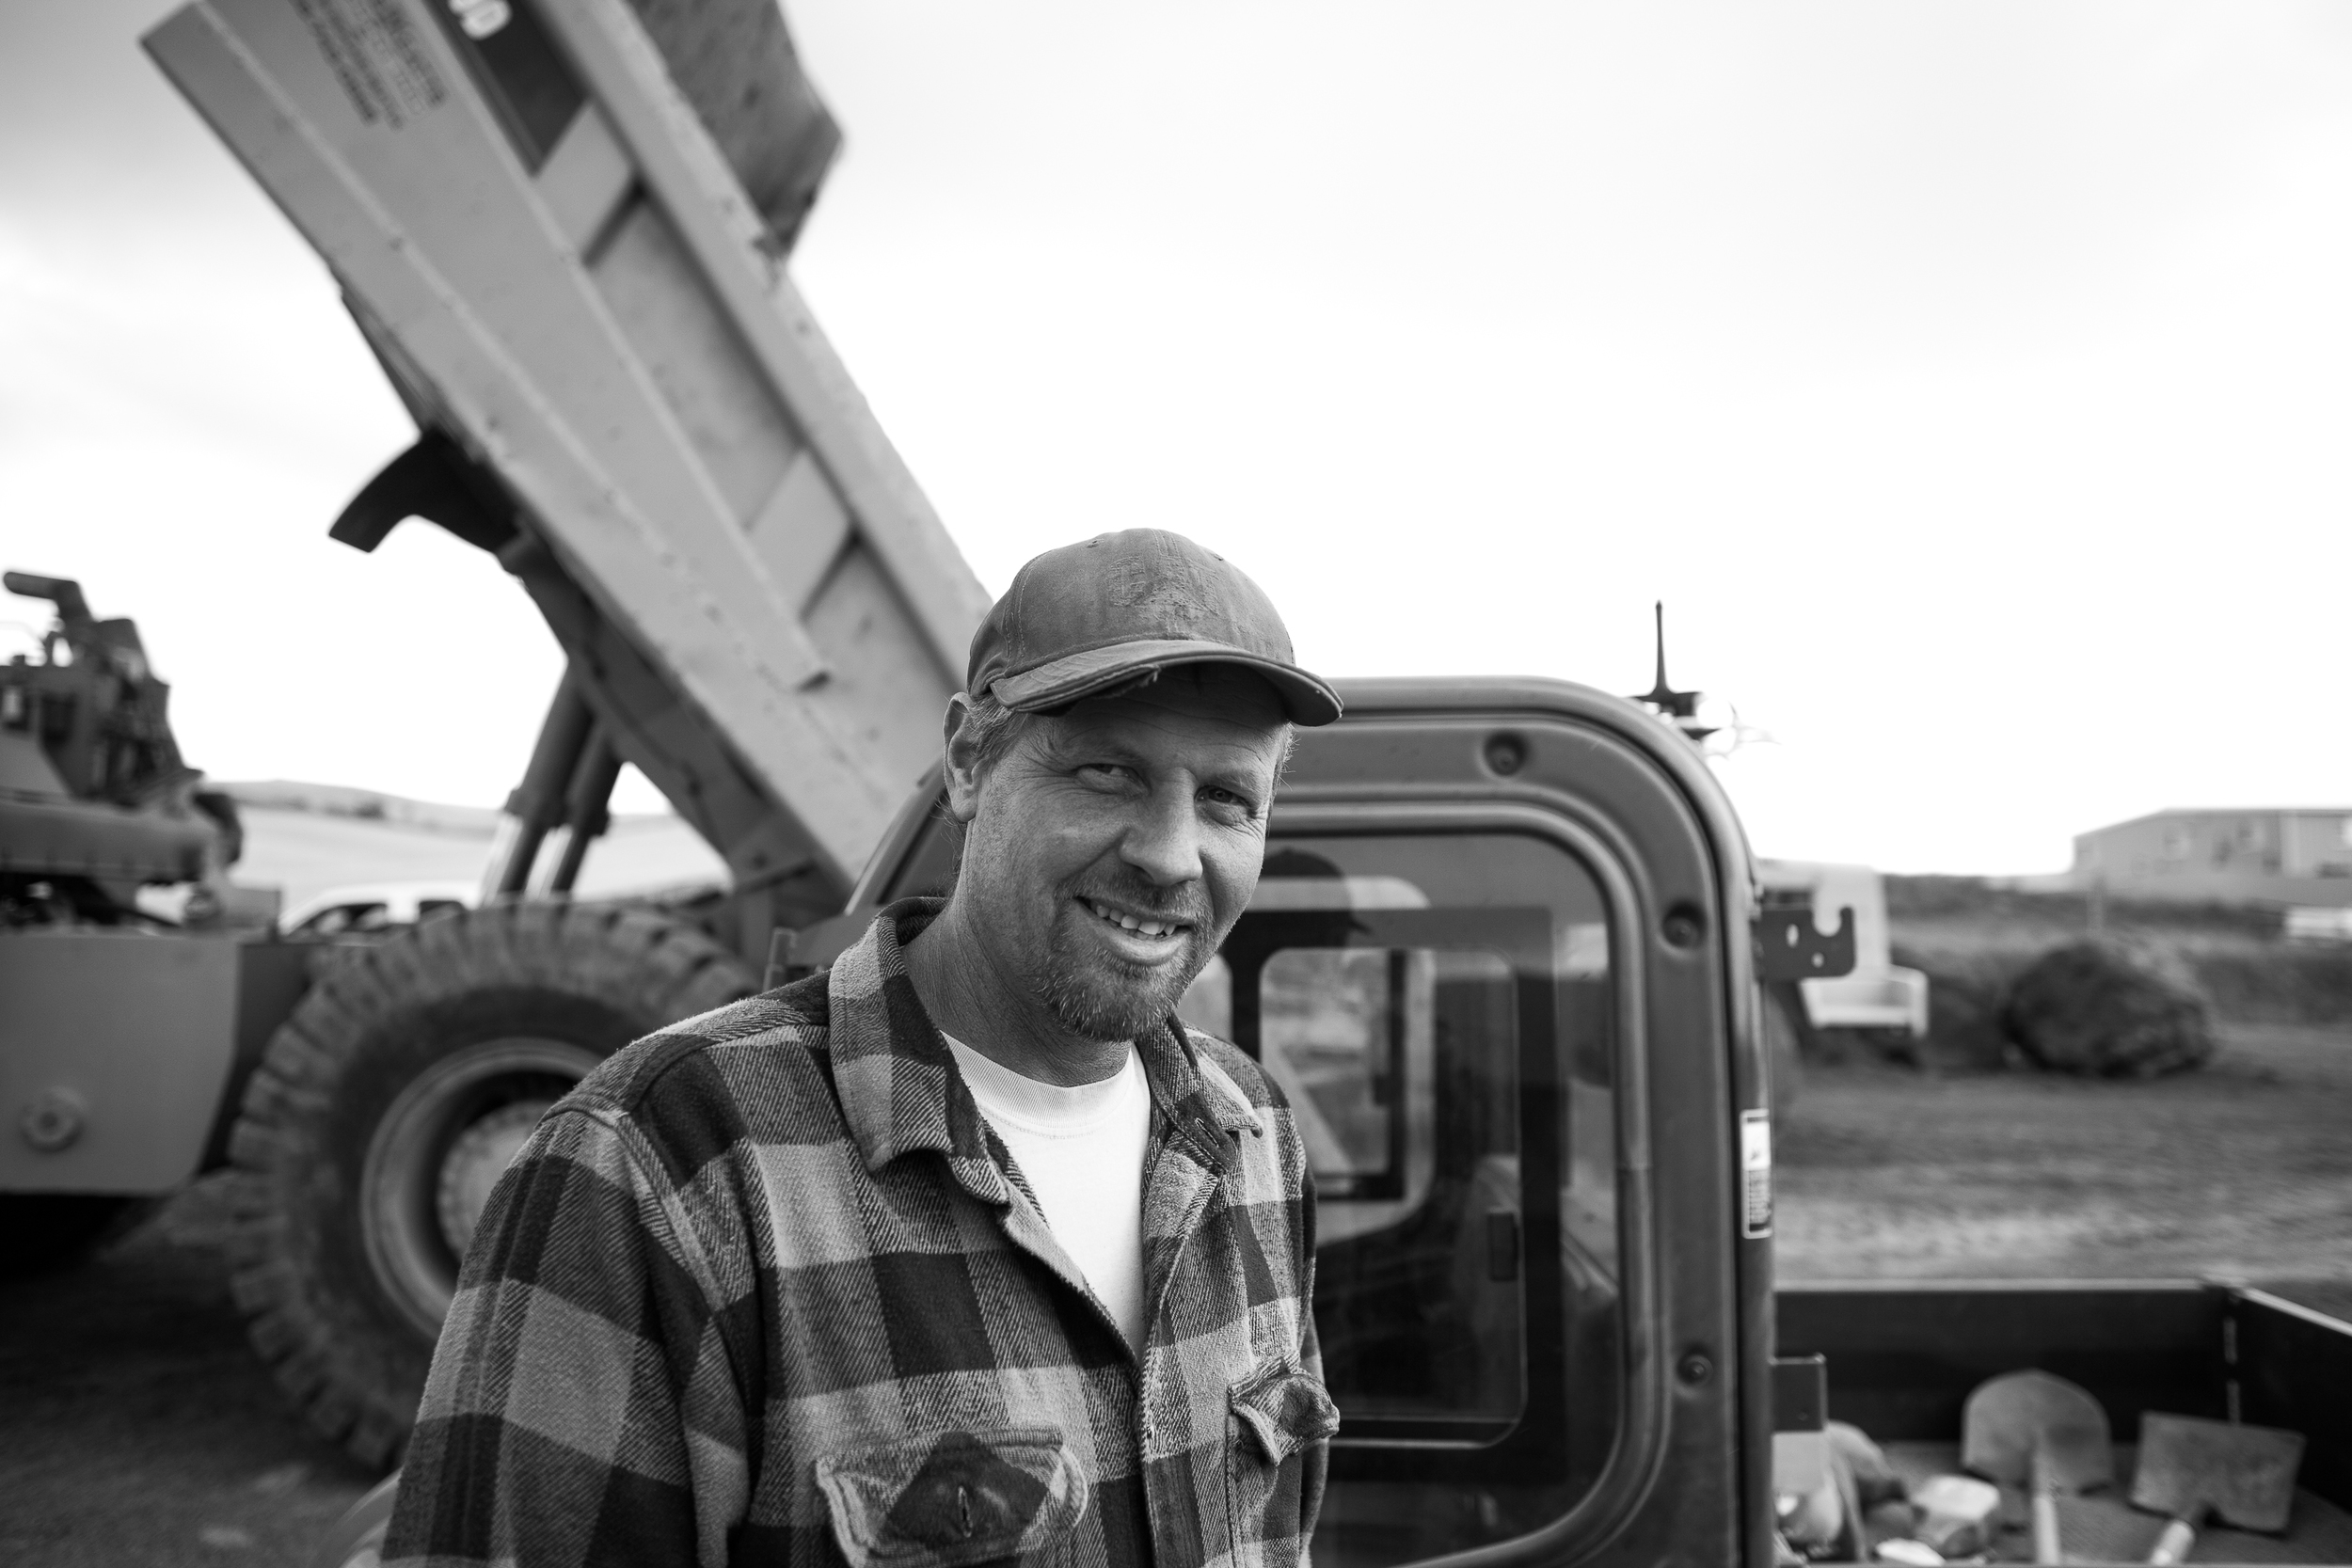 one of the guys working on the earth removal